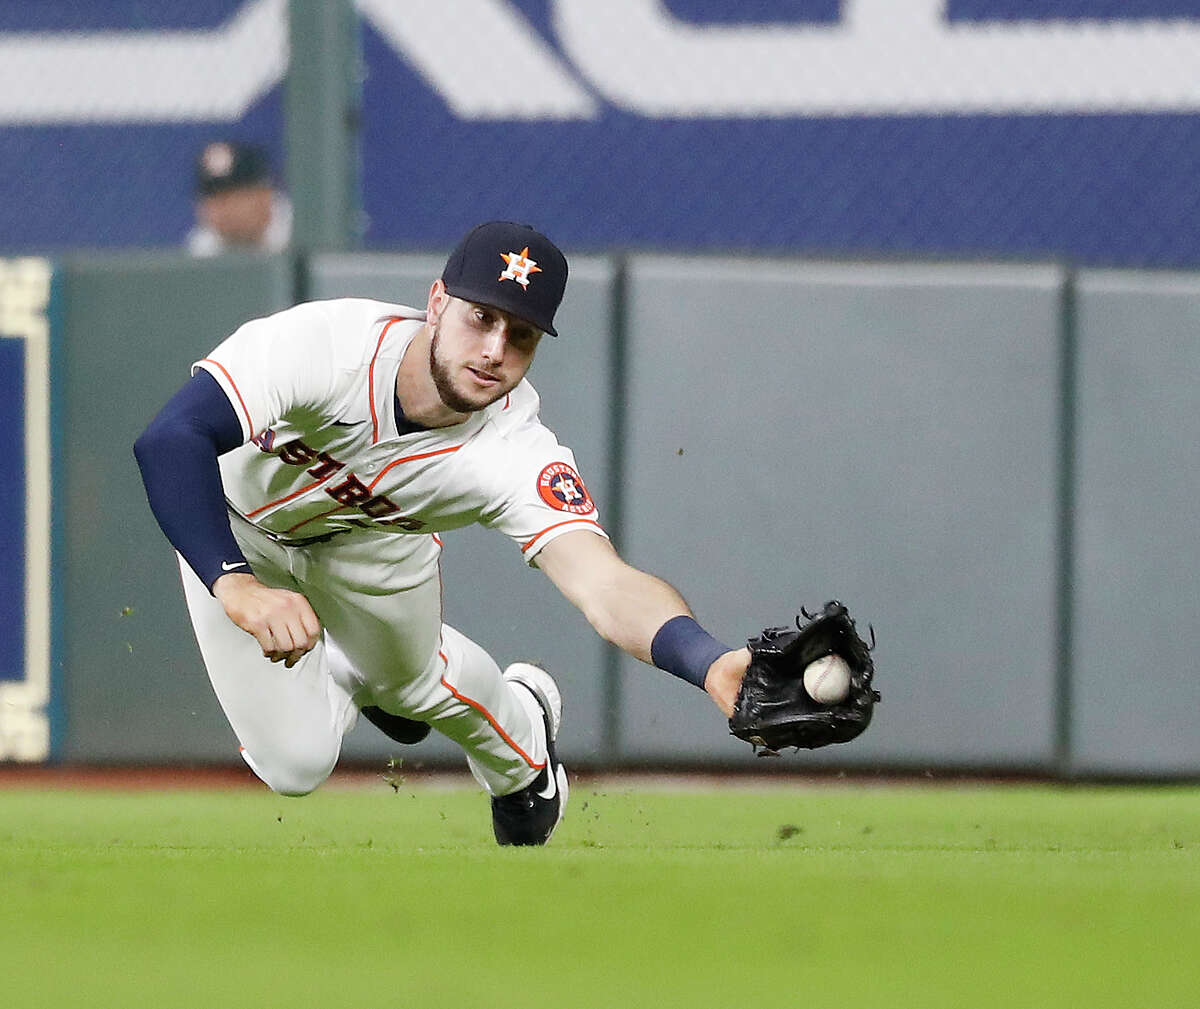 Astros right fielder Kyle Tucker makes a diving catch on Jared Walsh's line drive during the fourth inning of Wednesday's victory at Minute Maid Park.